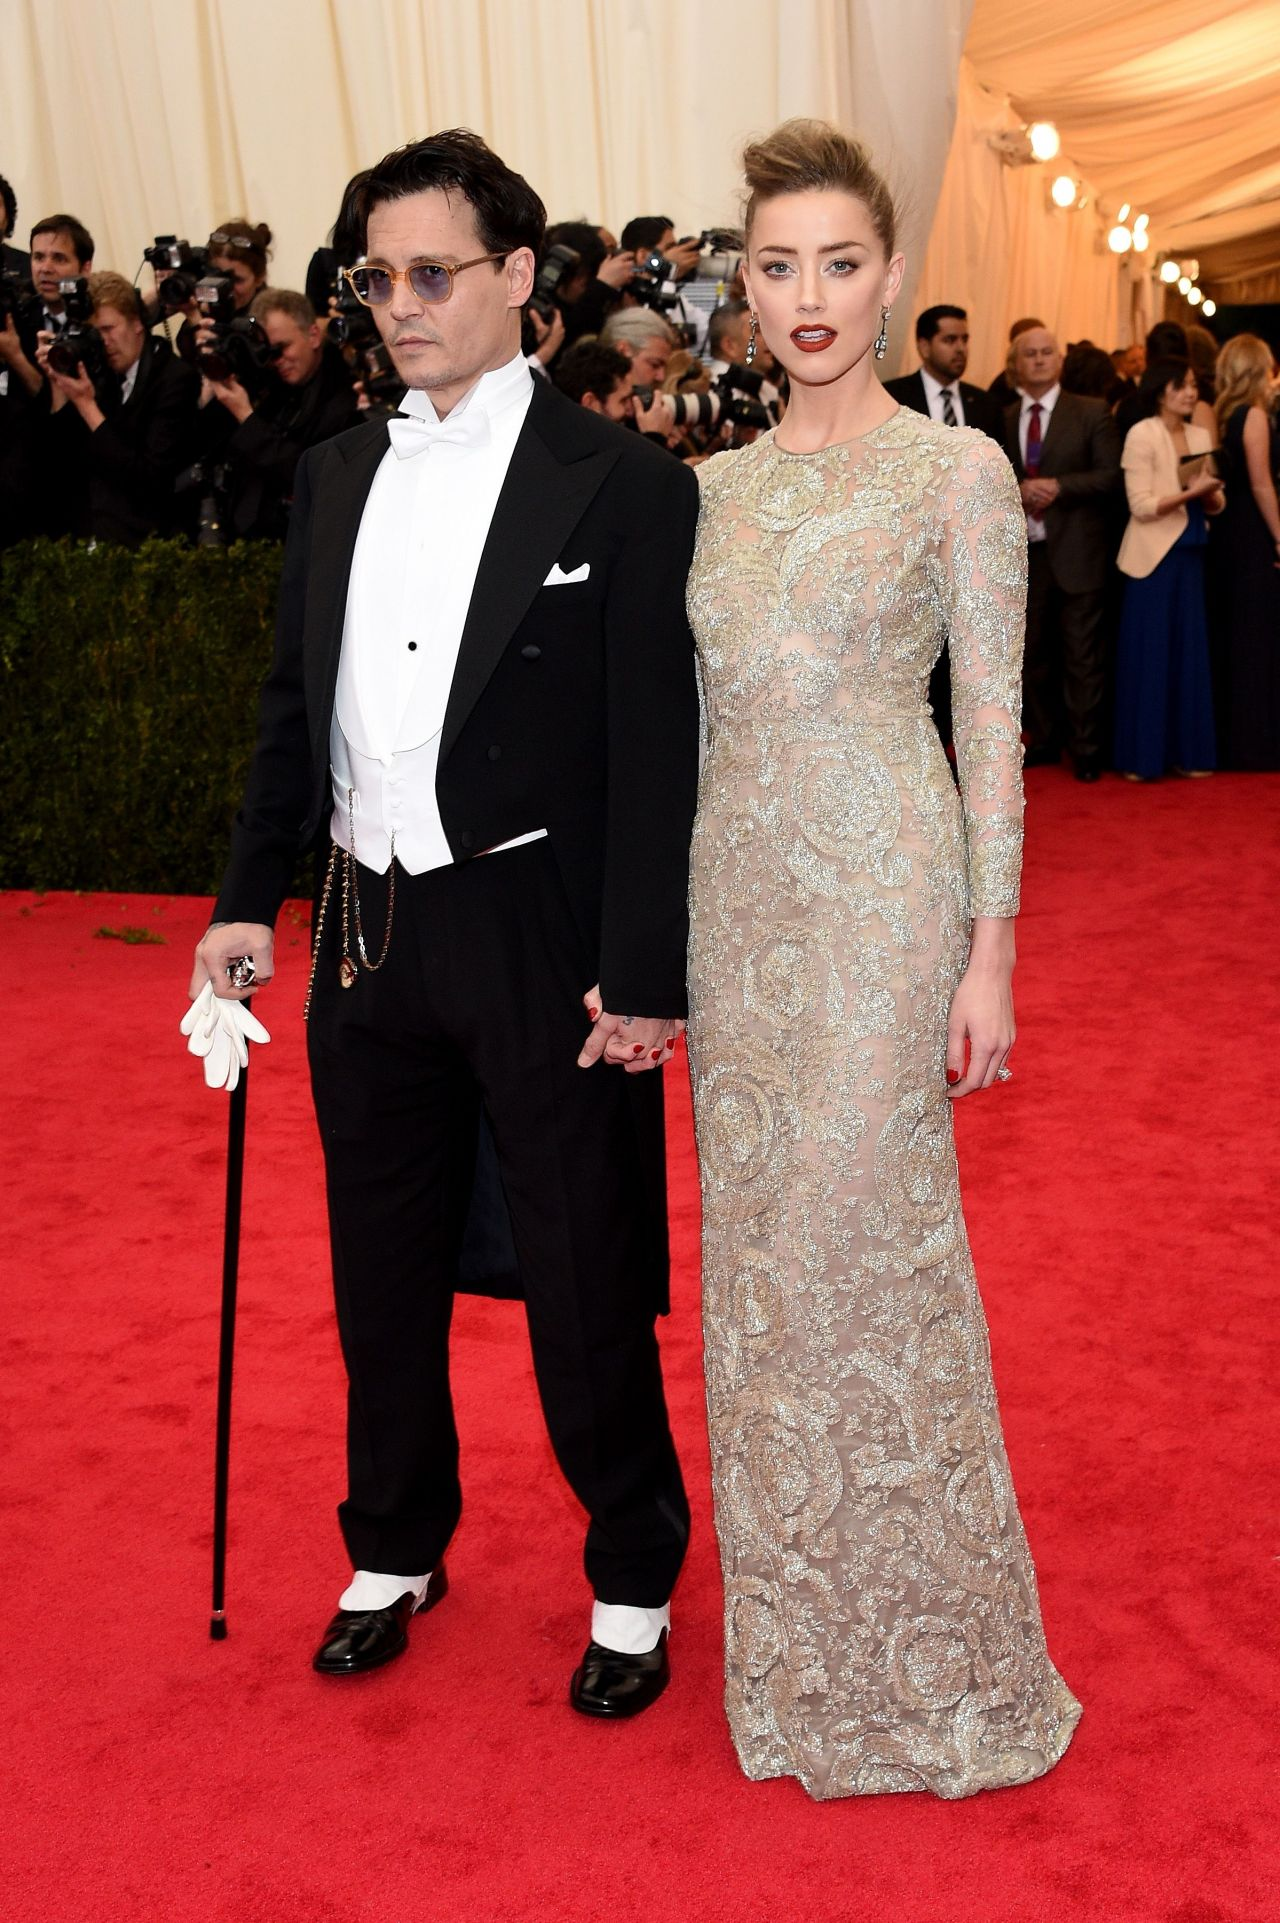 Amber Heard and Johnny Depp     2014 Met Costume Institute GalaJohnny Depp Amber Heard 2014